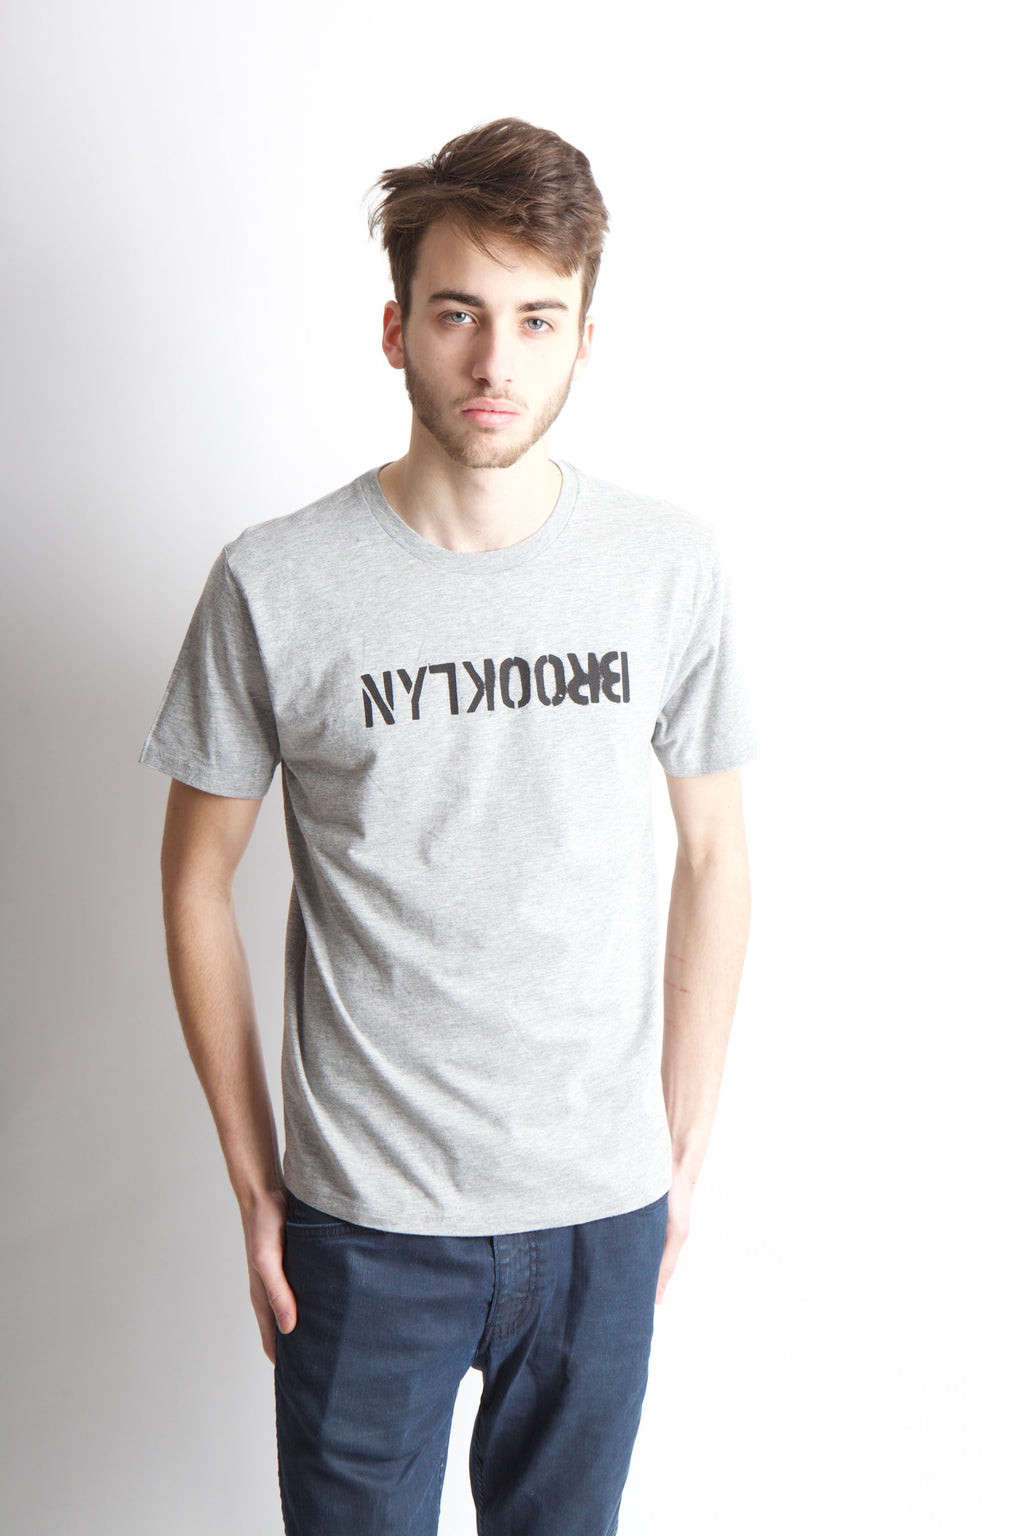 STENCIL FLIPPED GREY BROOKLYN T-SHIRT - BROOKLYN INDUSTRIES